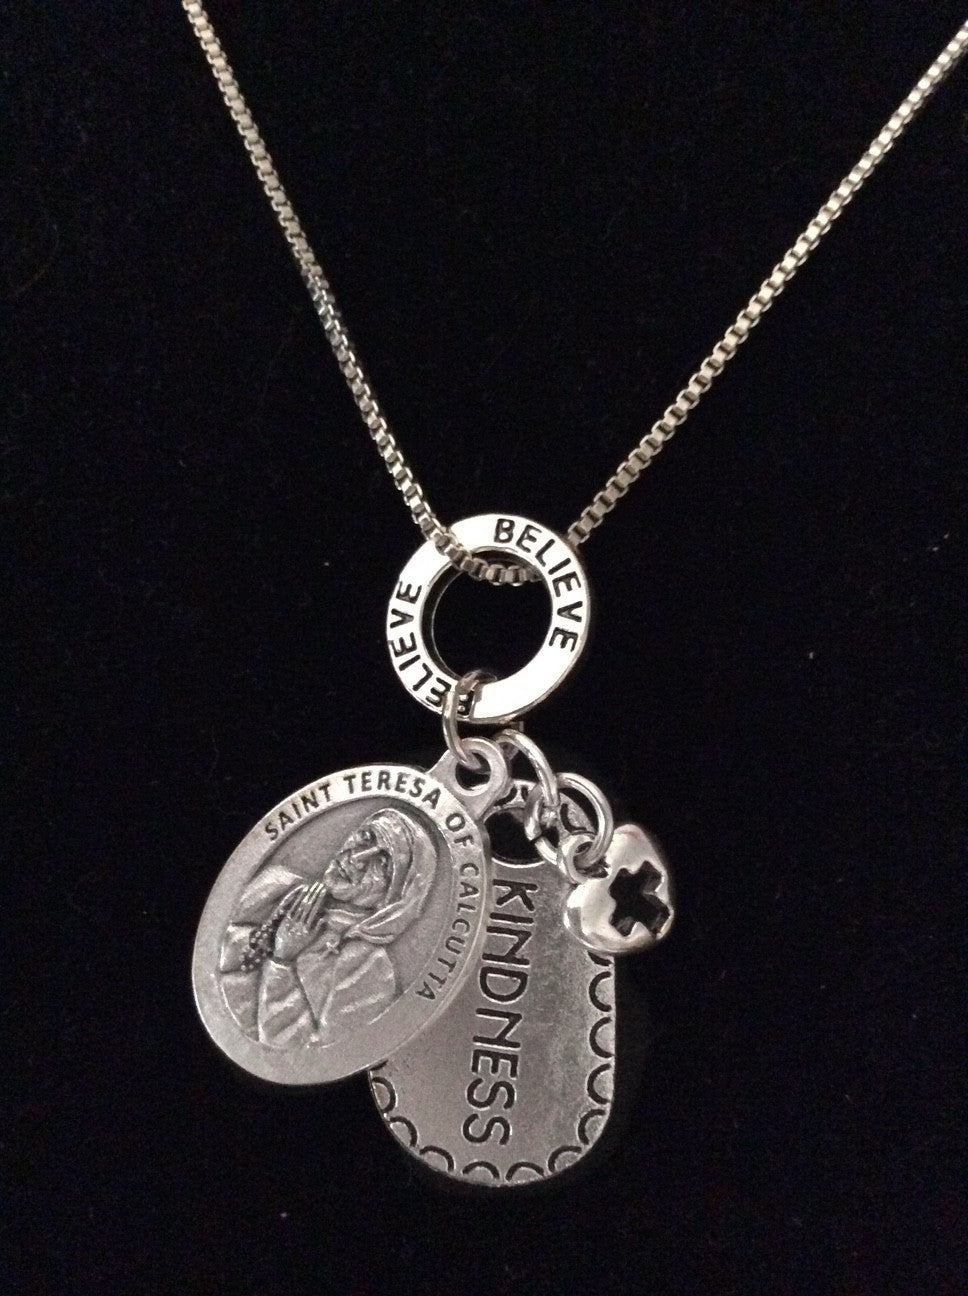 Saint Teresa Silver Necklace Mother Teresa Believe Kindness Catholic Medal Trendy Inspirational